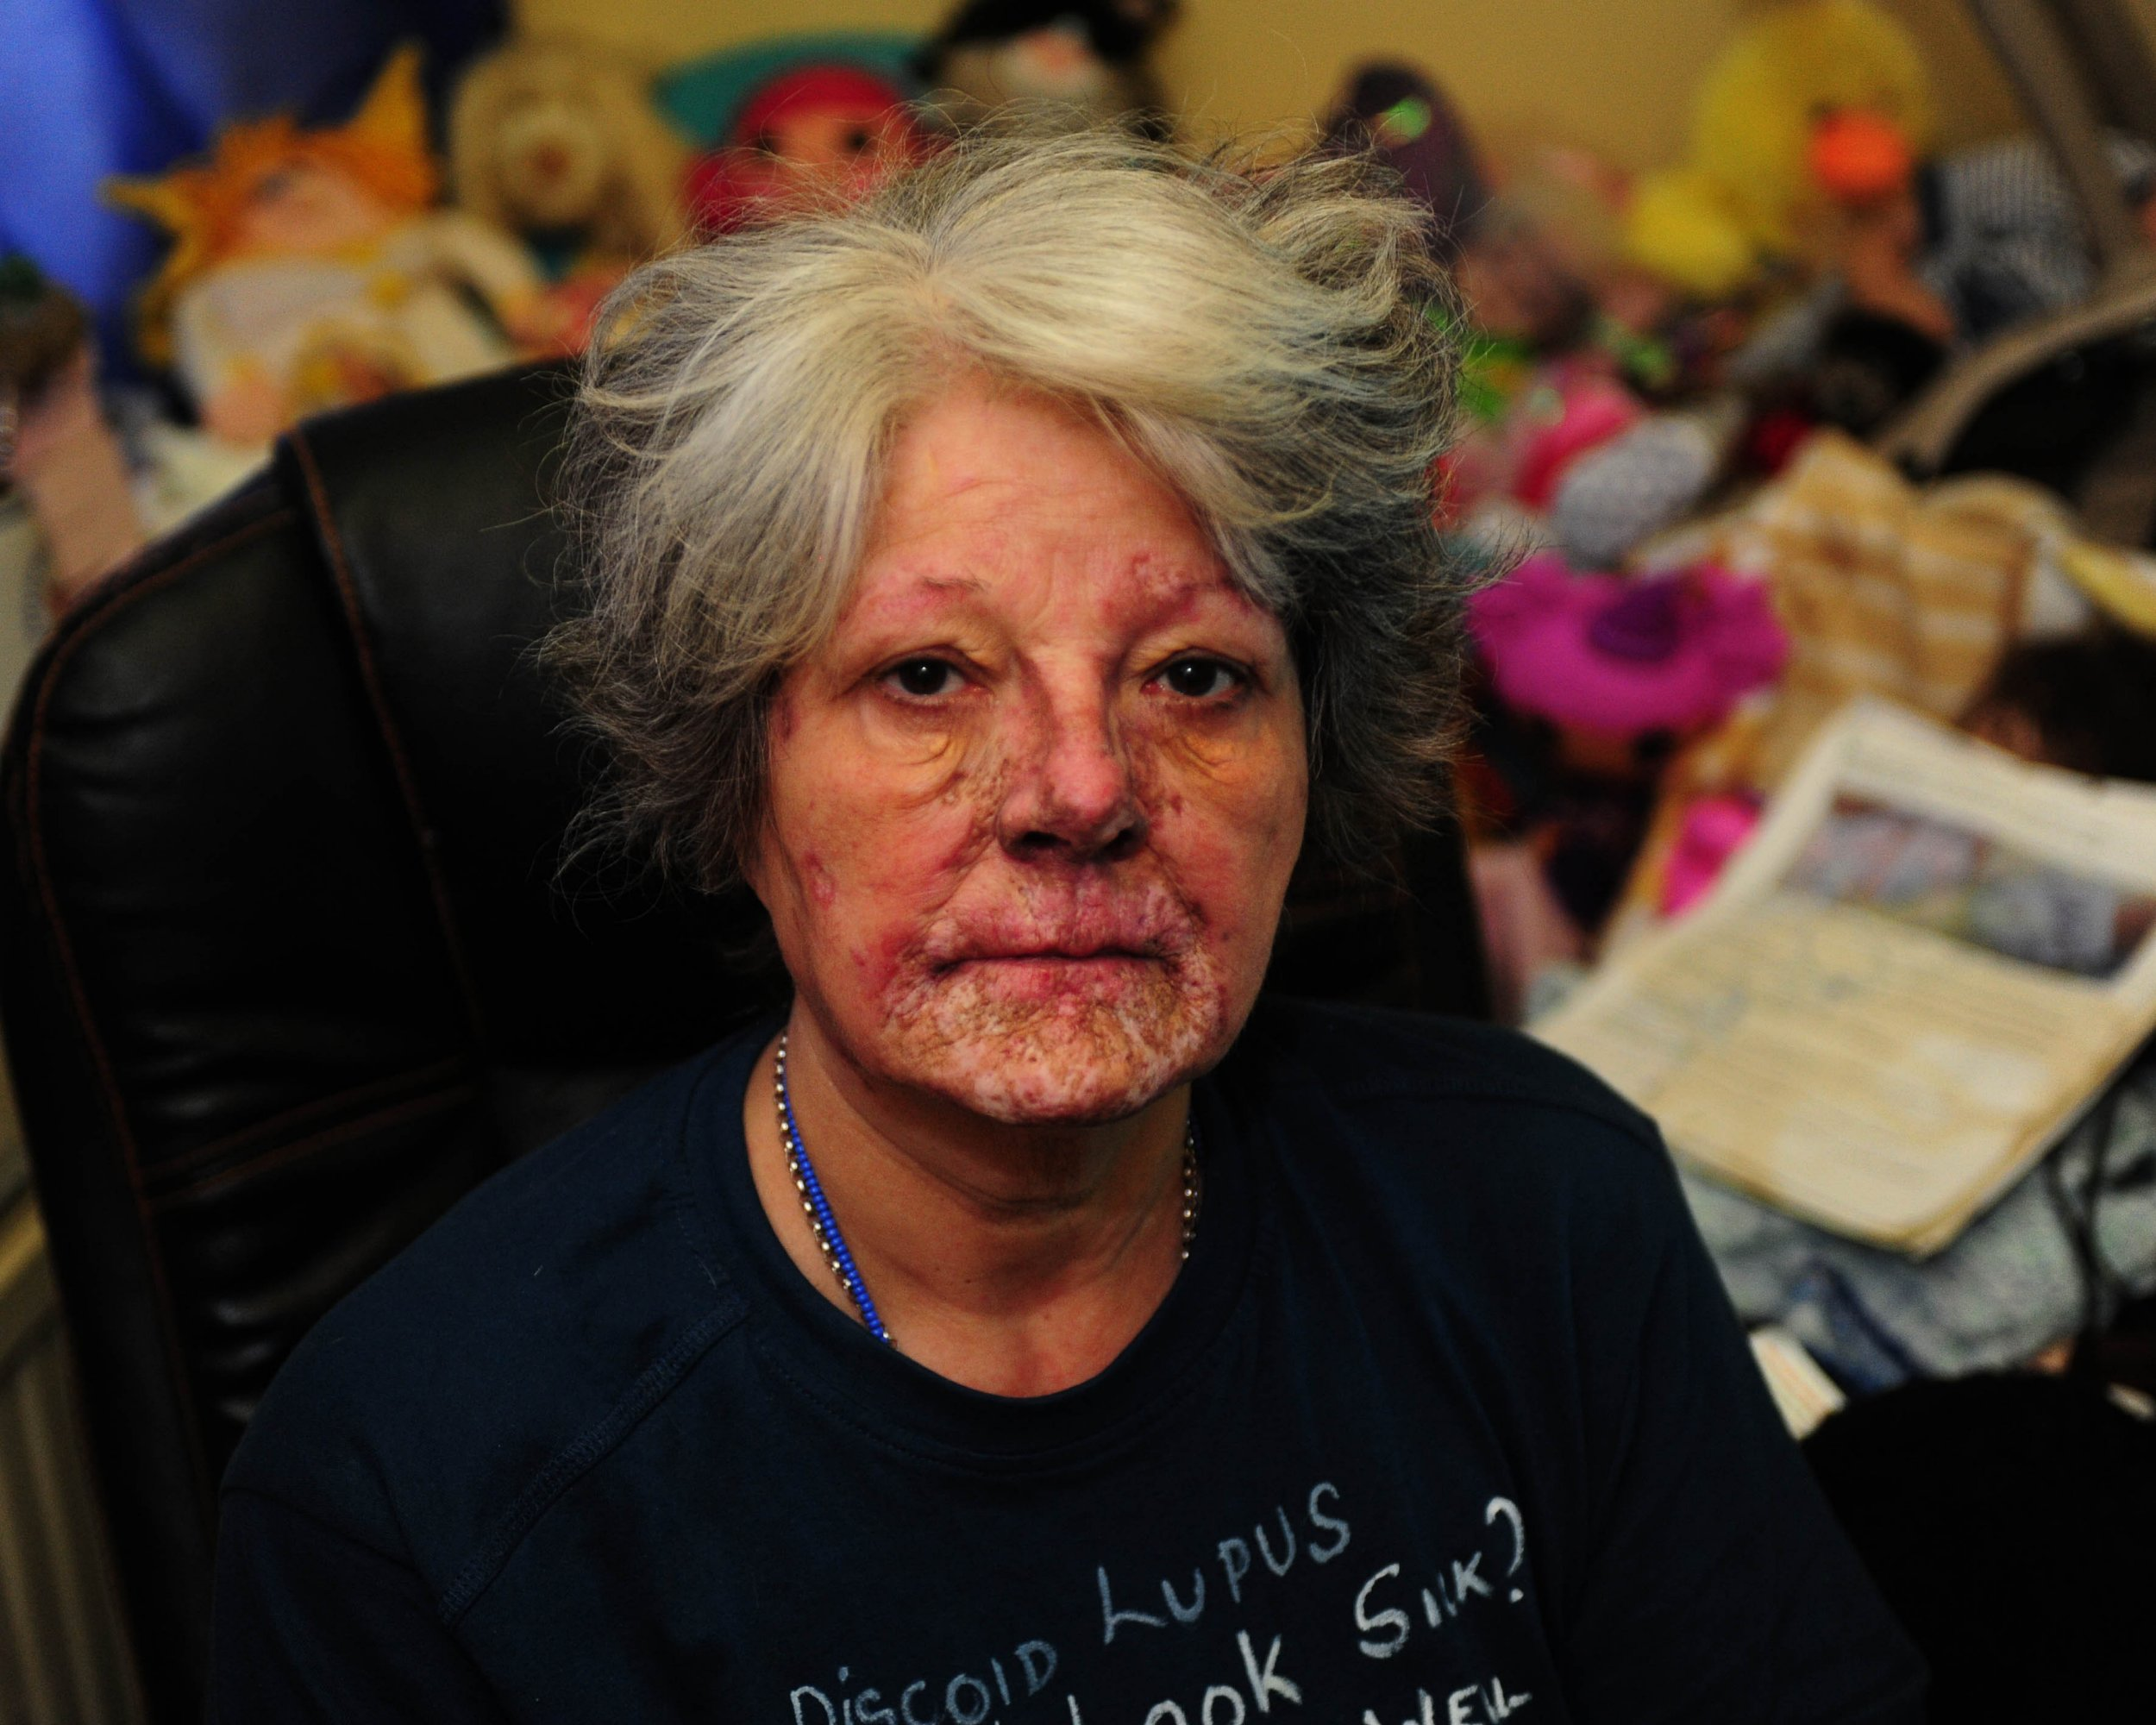 Woman with incurable flesh-eating disease told to 'go back to work'